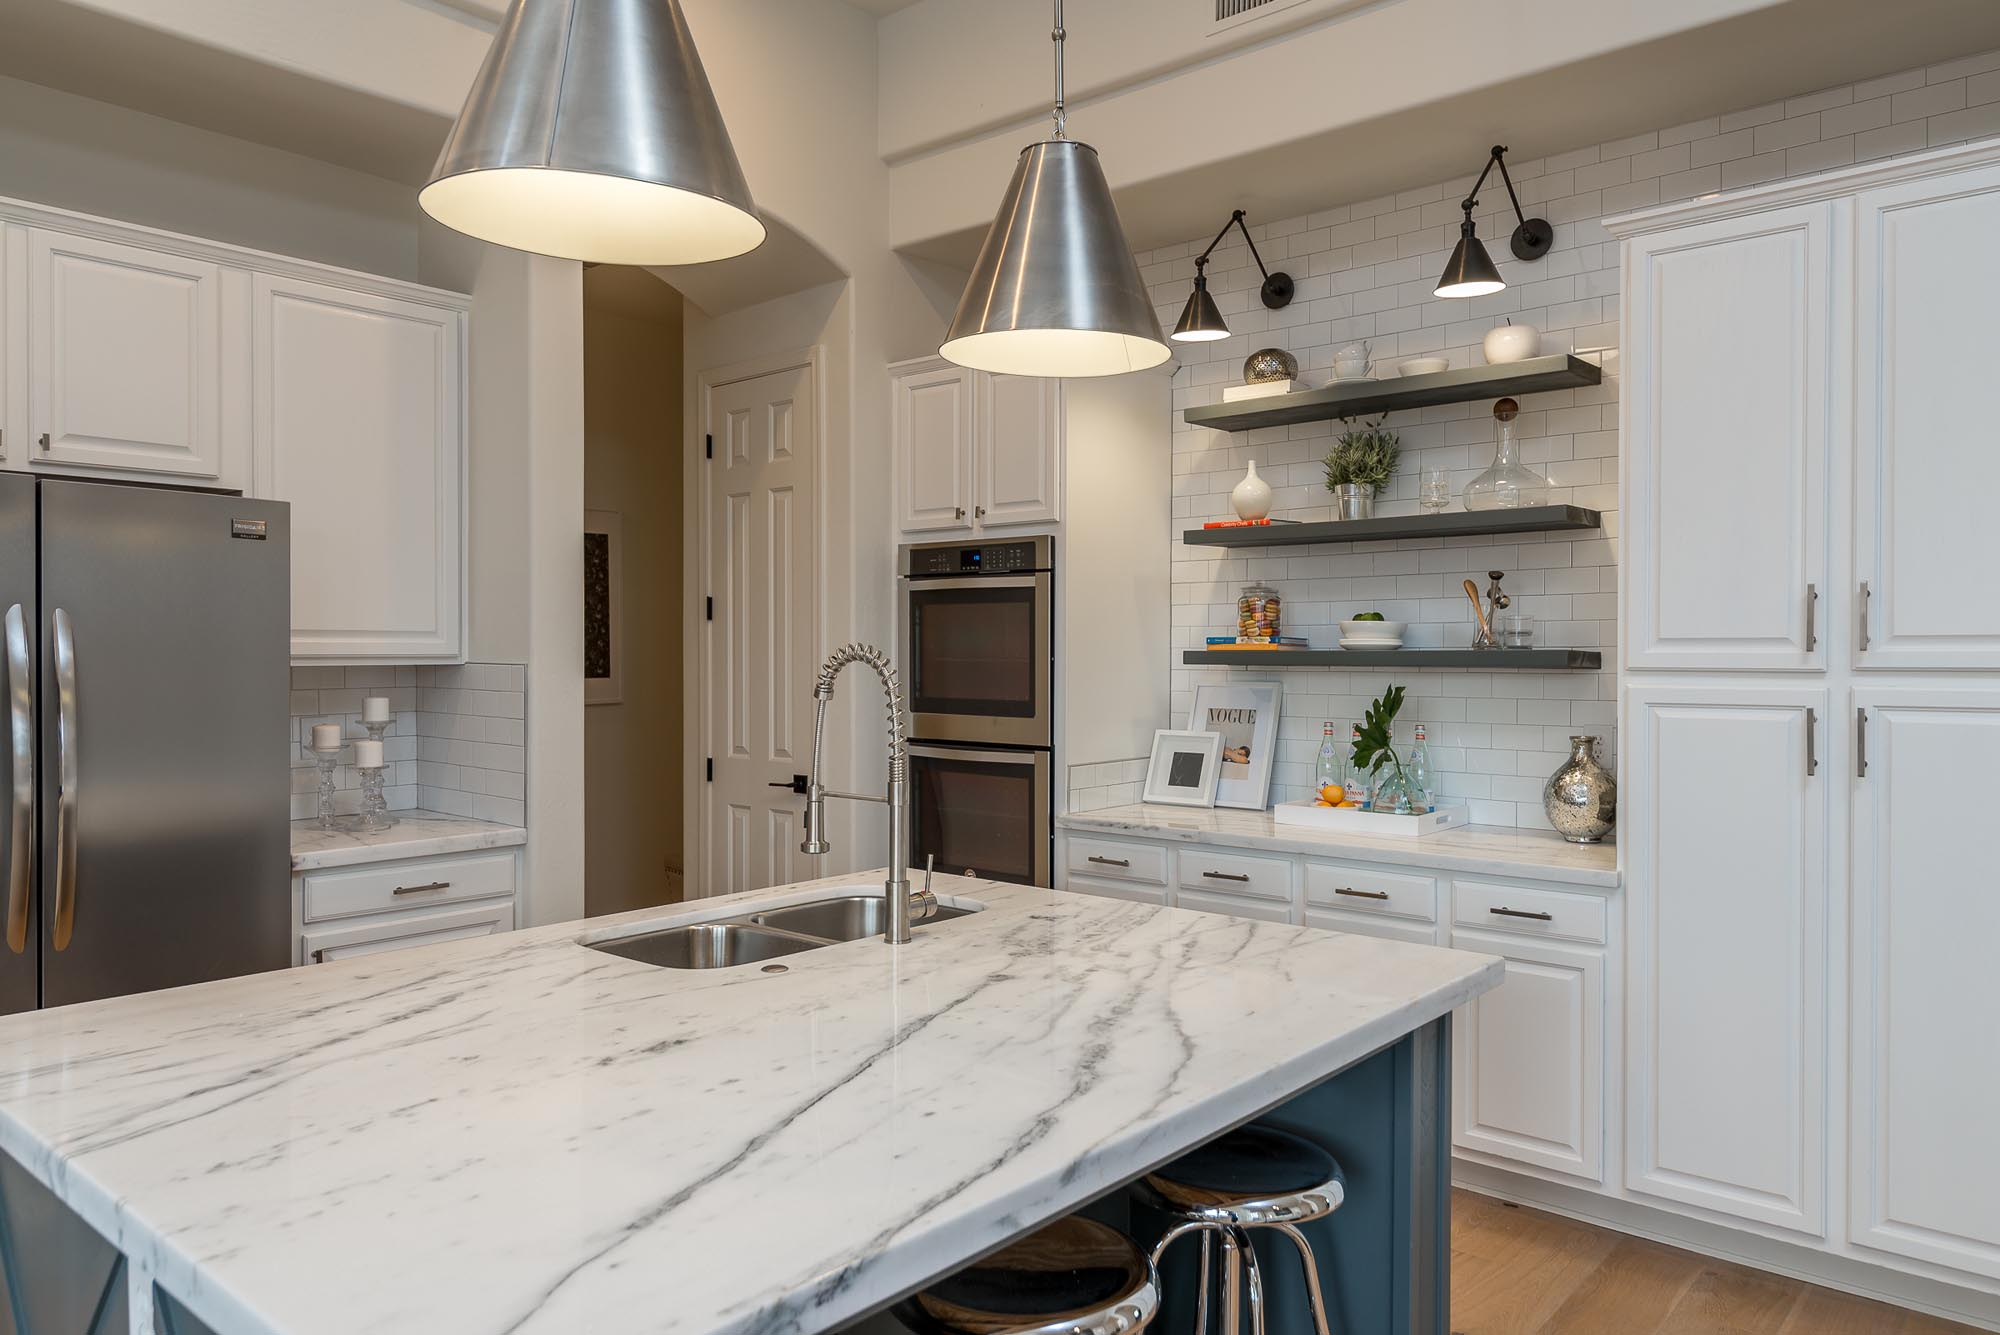 Kitchen with island sink and stylish hanging lights